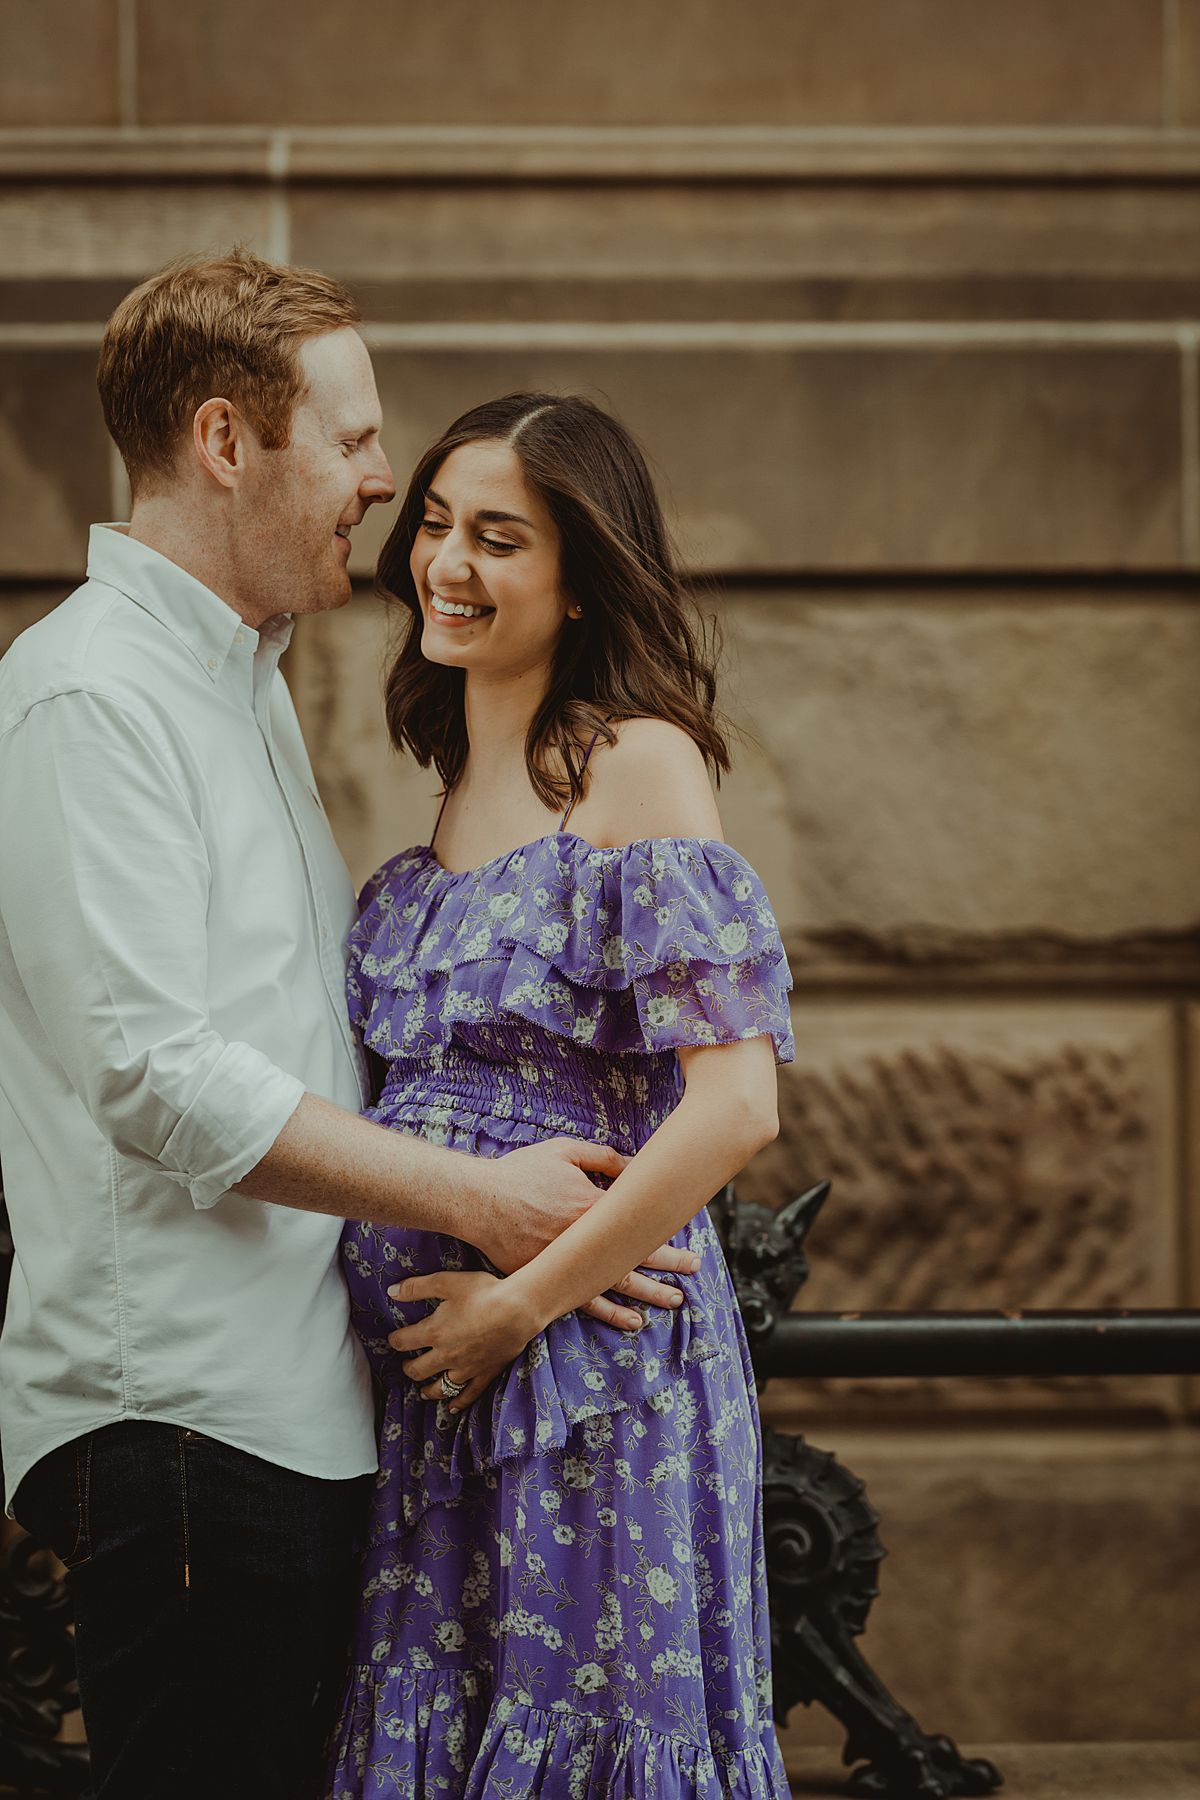 expecting couple standing and happily giggling in front of The Dakota or the Dakota Apartments on central park west nyc for maternity photo session. maternity photo by nyc family and newborn photographer krystil mcdowall